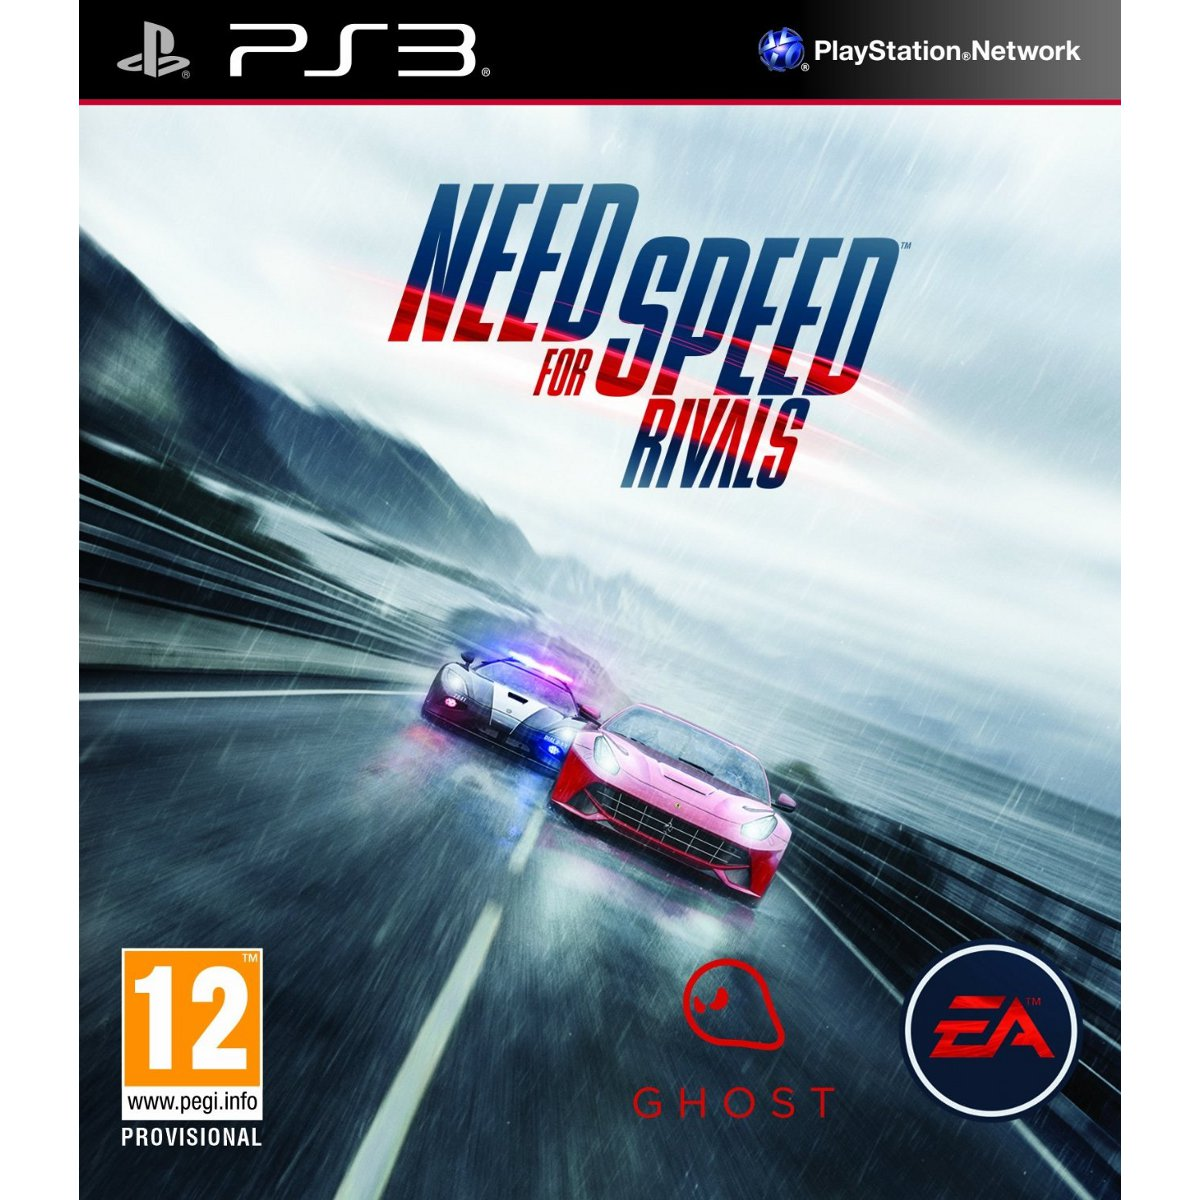 LDLC.com Need for Speed Rivals - Edition Limitée (PS3) Need for Speed Rivals - Edition Limitée (PS3)